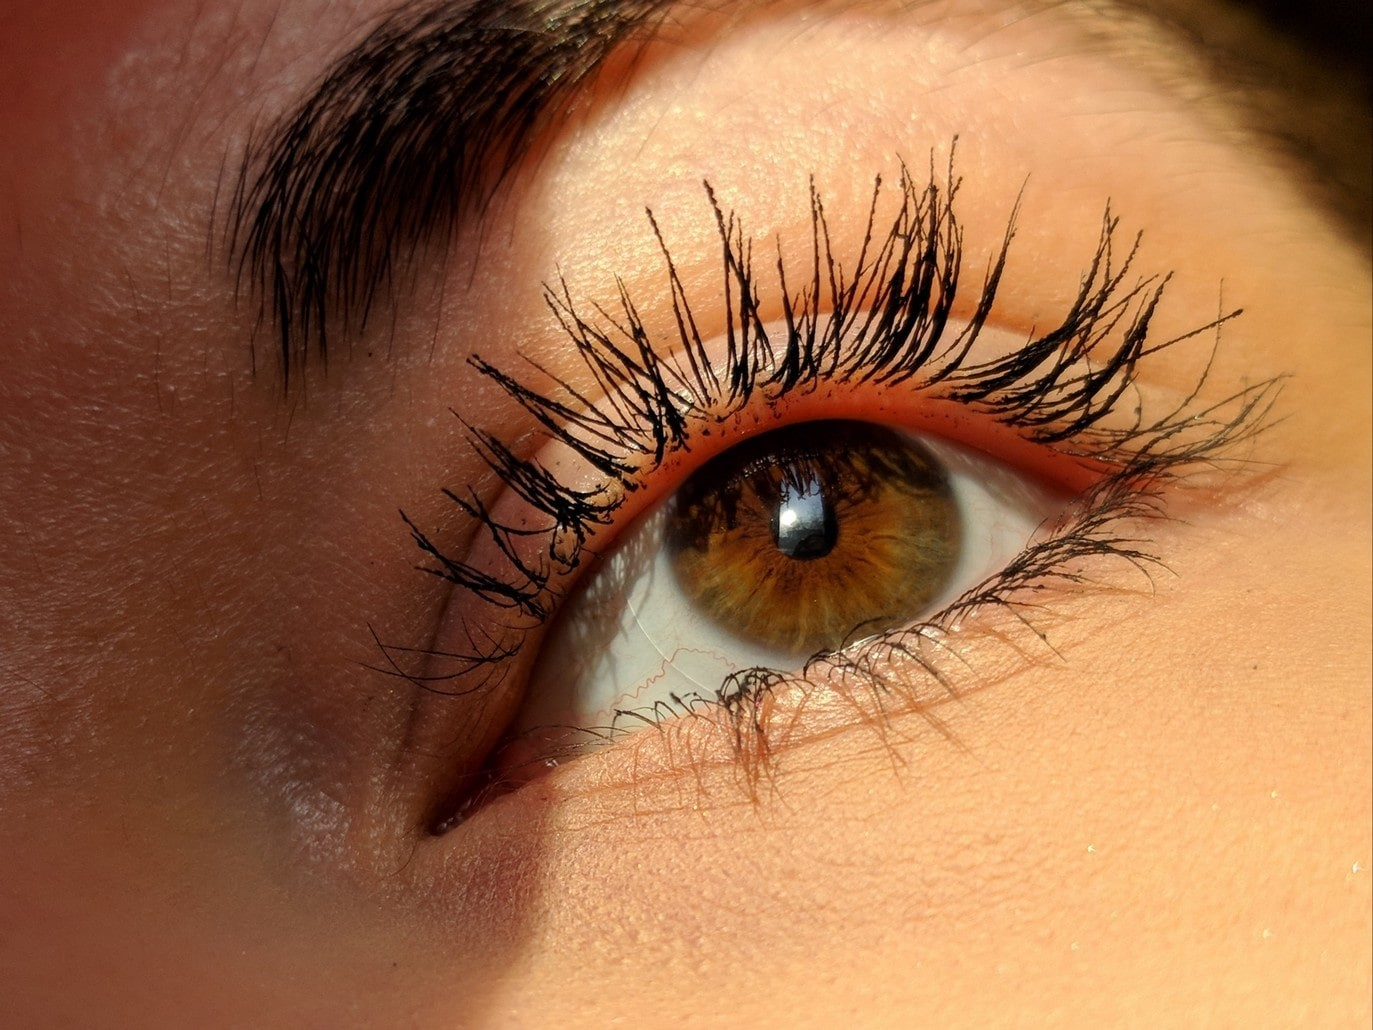 close up of woman's eye area showing her curled eyelashes.